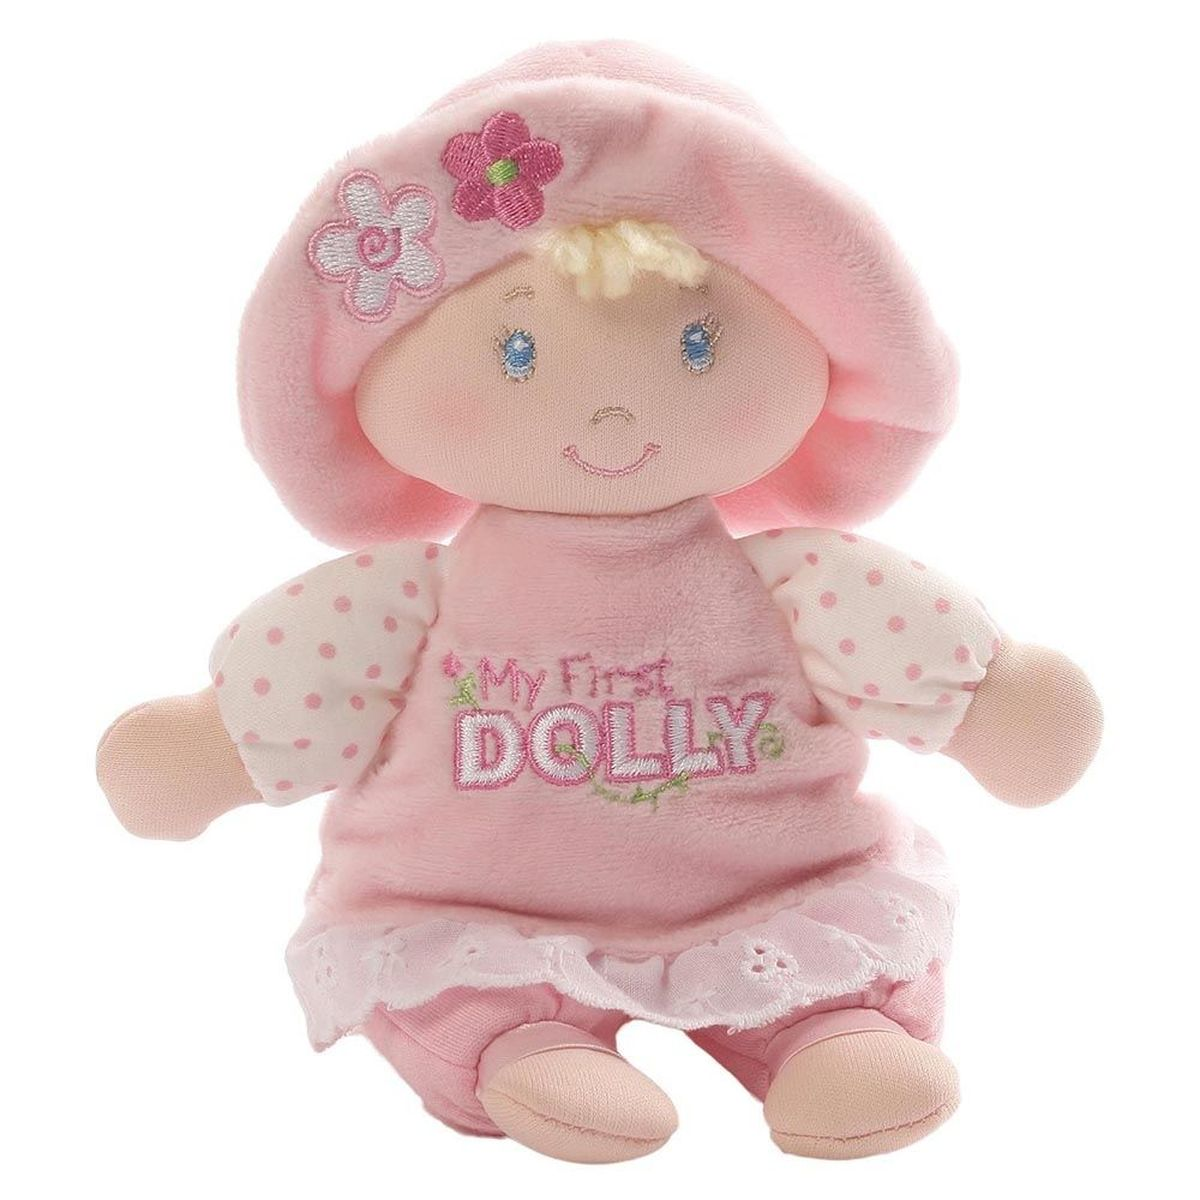 Gund Мягкая игрушка My First Dolly Small Blonde Rattle 18